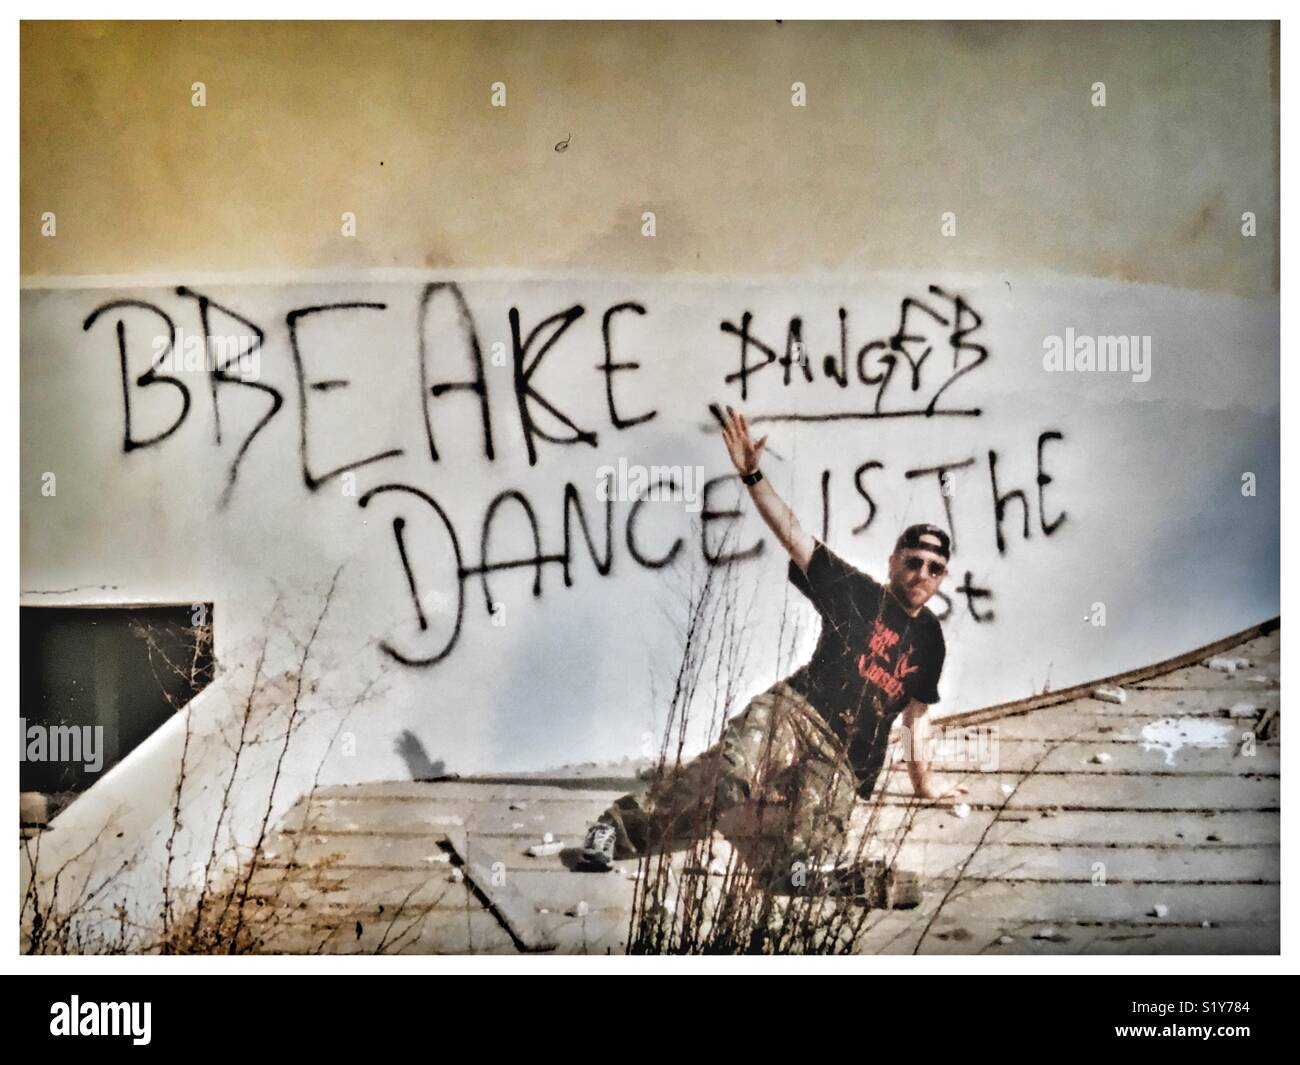 Breake Dance Is The Best (sic) B-Boy dancing in front of graffiti on a wall. Stock Photo